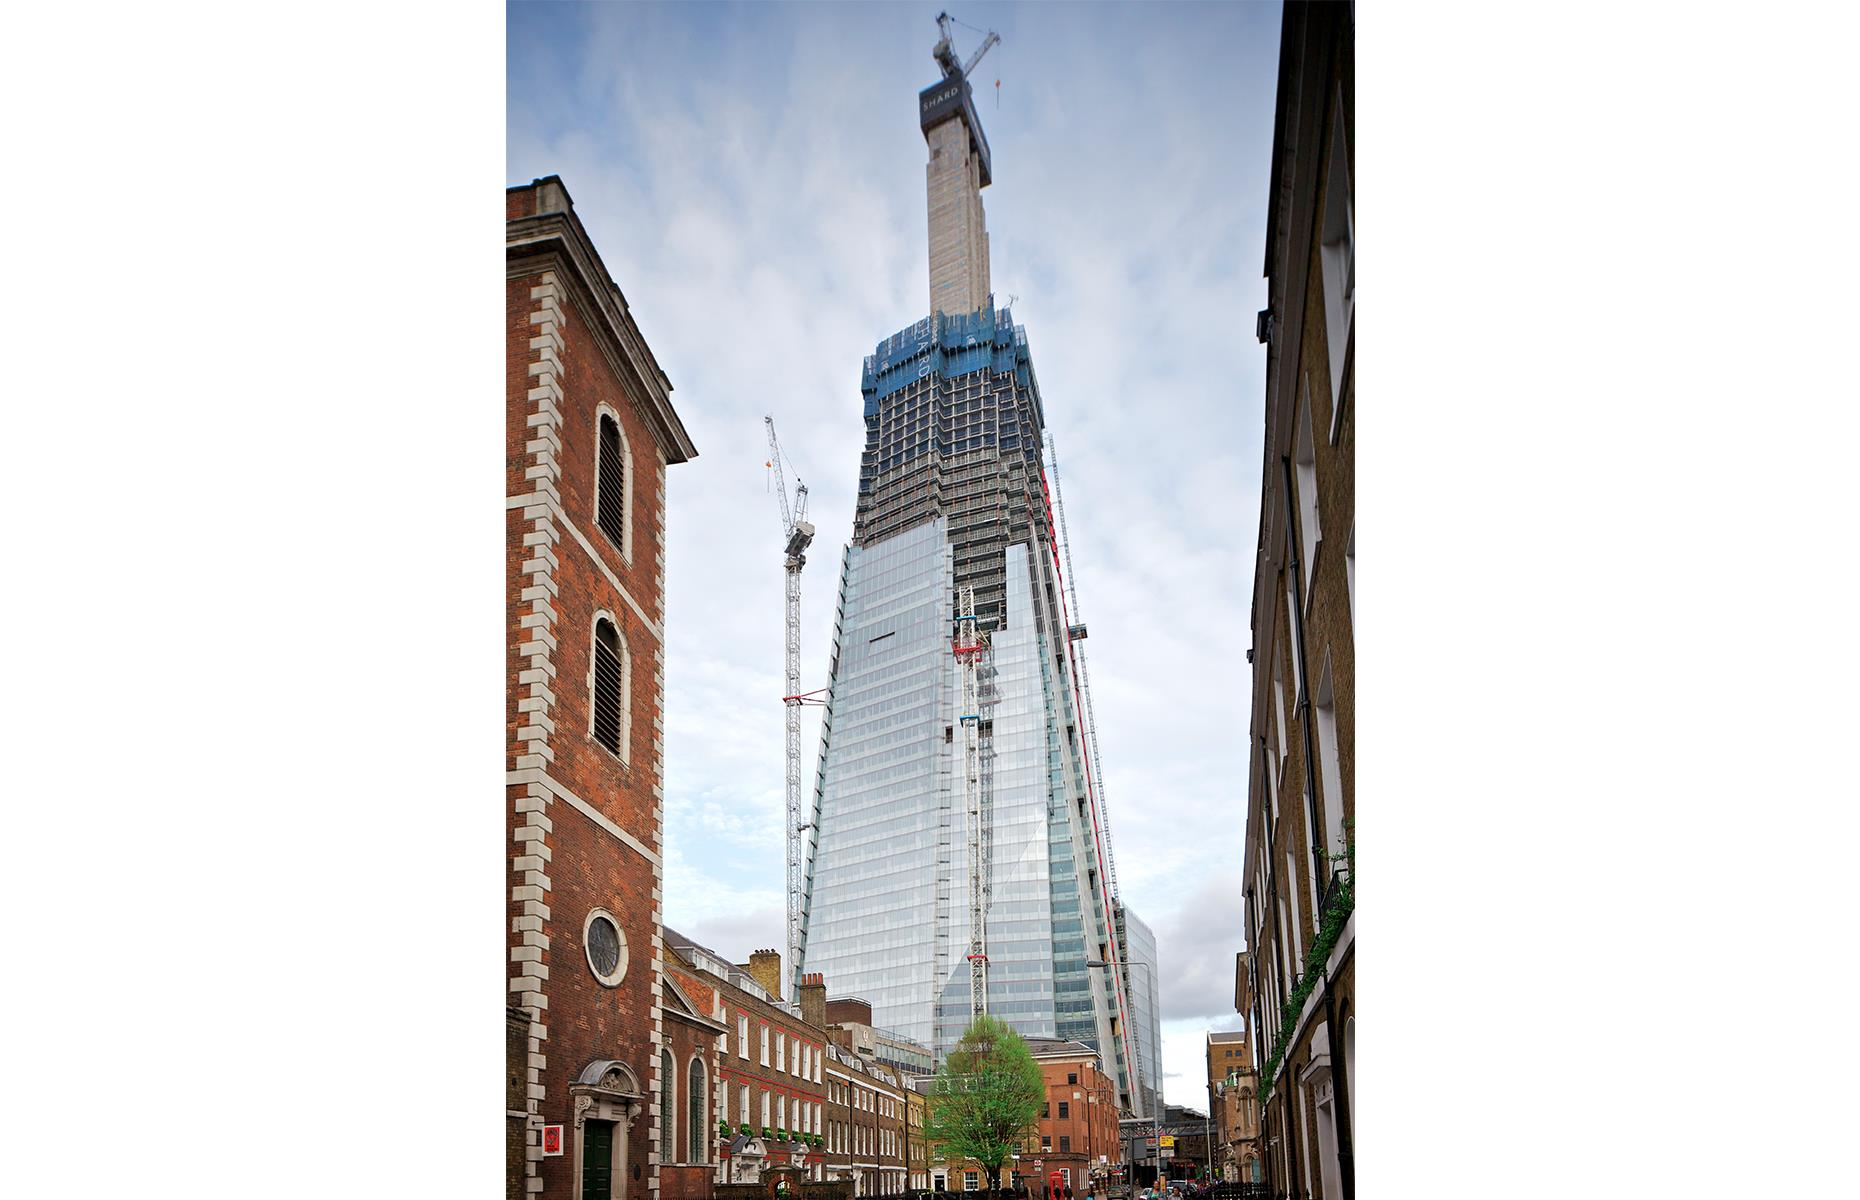 Slide 37 of 41: Still the tallest building in London, The Shard was completed in 2012, and its uber-modern design was the vision of Italian architect Renzo Piano. It took more than 1,450 workers from 60 countries to build this glass behemoth, which rises to 1,004 feet (306m) and has a steel spire weighing 500 tons. It's pictured here as it takes shape in April 2011.